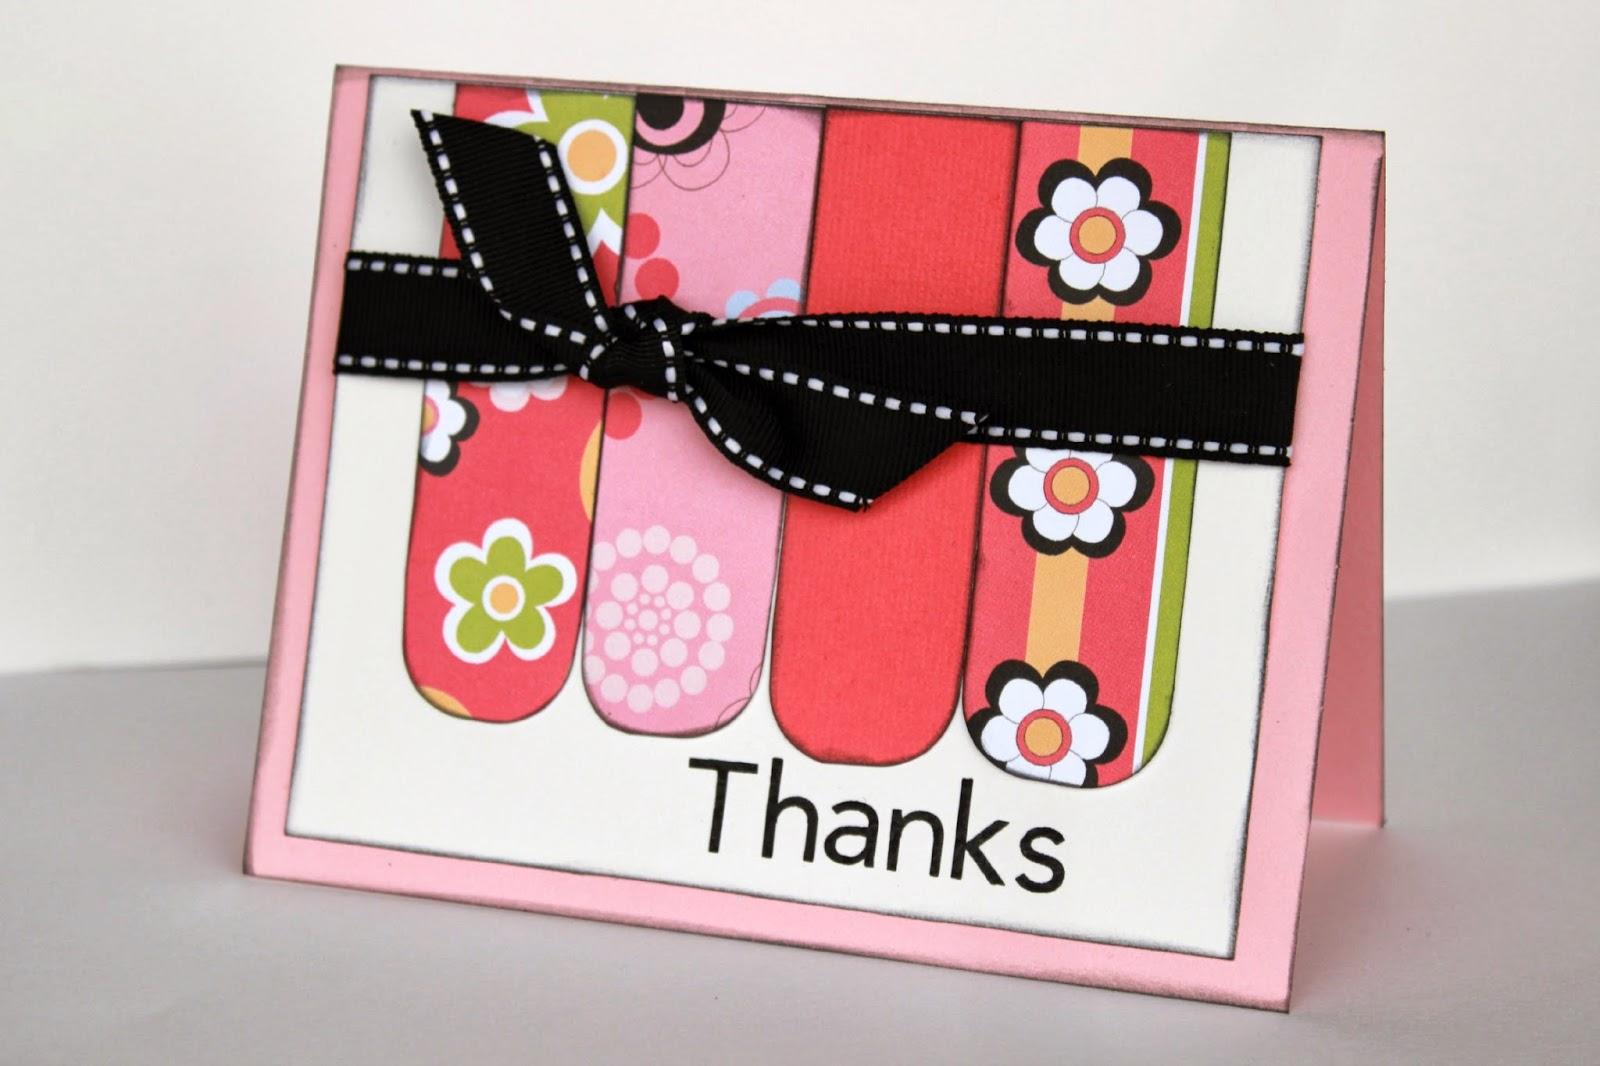 Thanks Card Tutorial from www.summerscraps.com